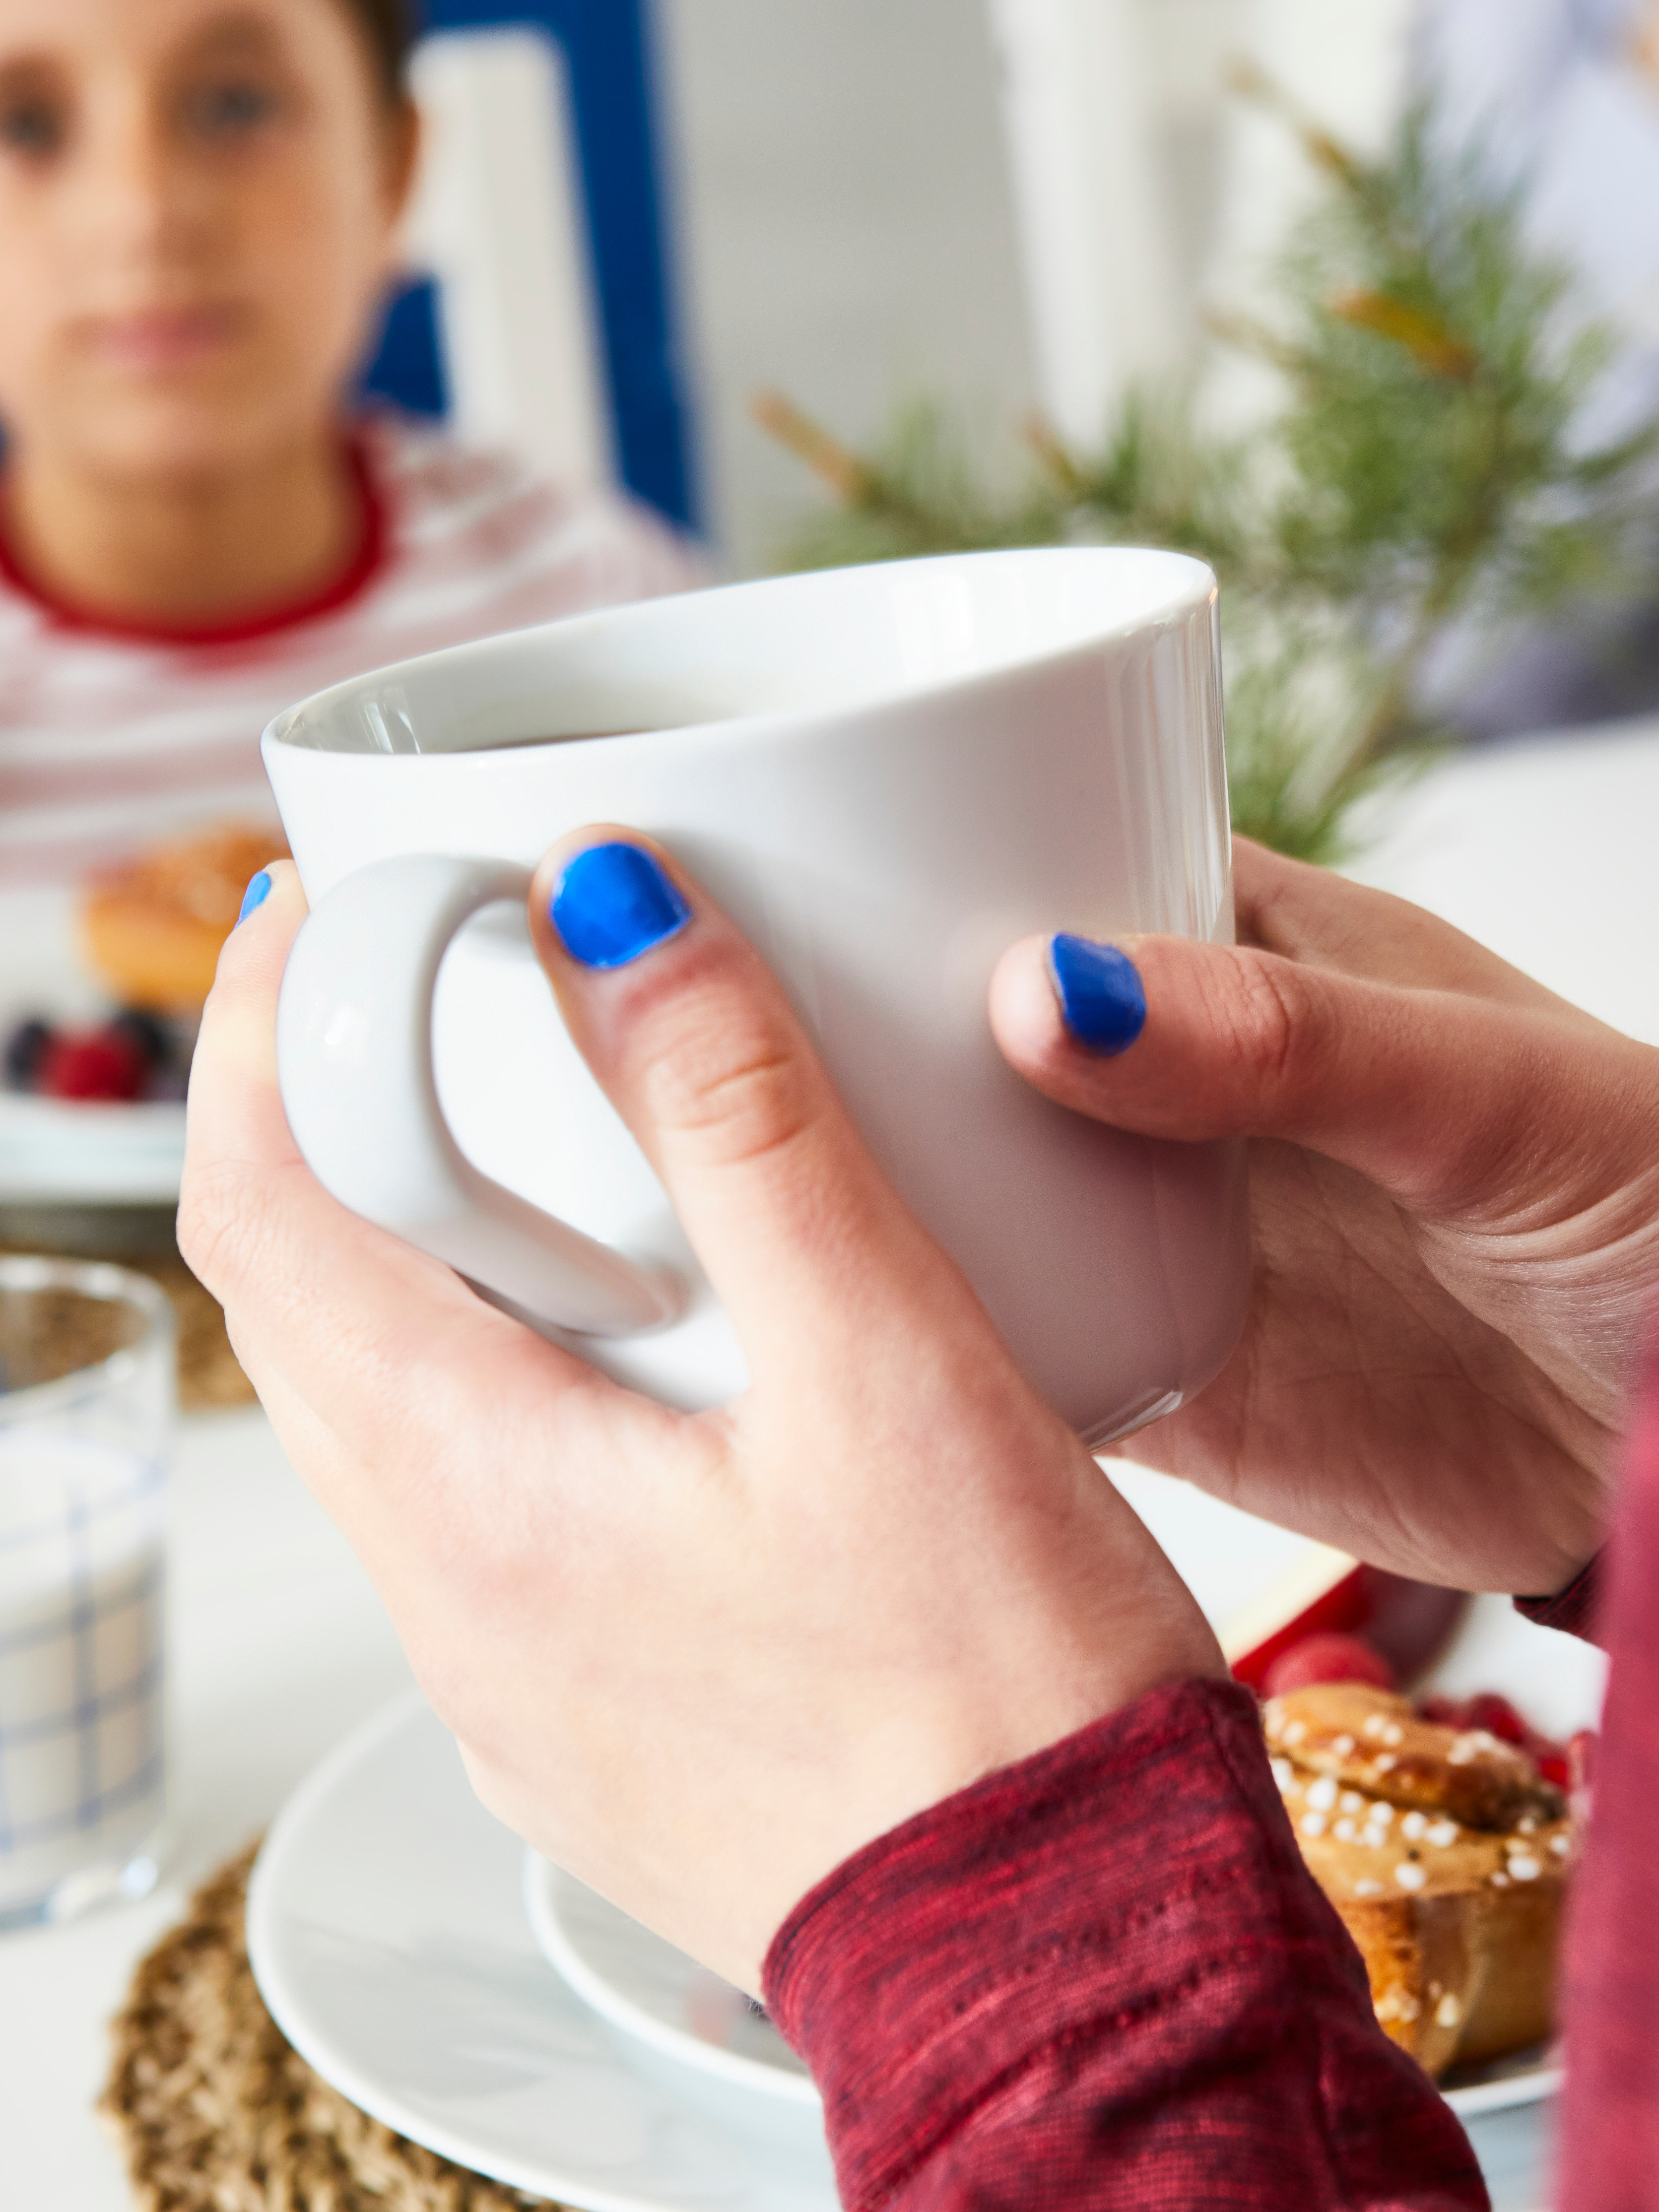 Close-up of an IKEA 365+ mug being held in a woman's hands with cool blue nail polish, with a small boy in background.